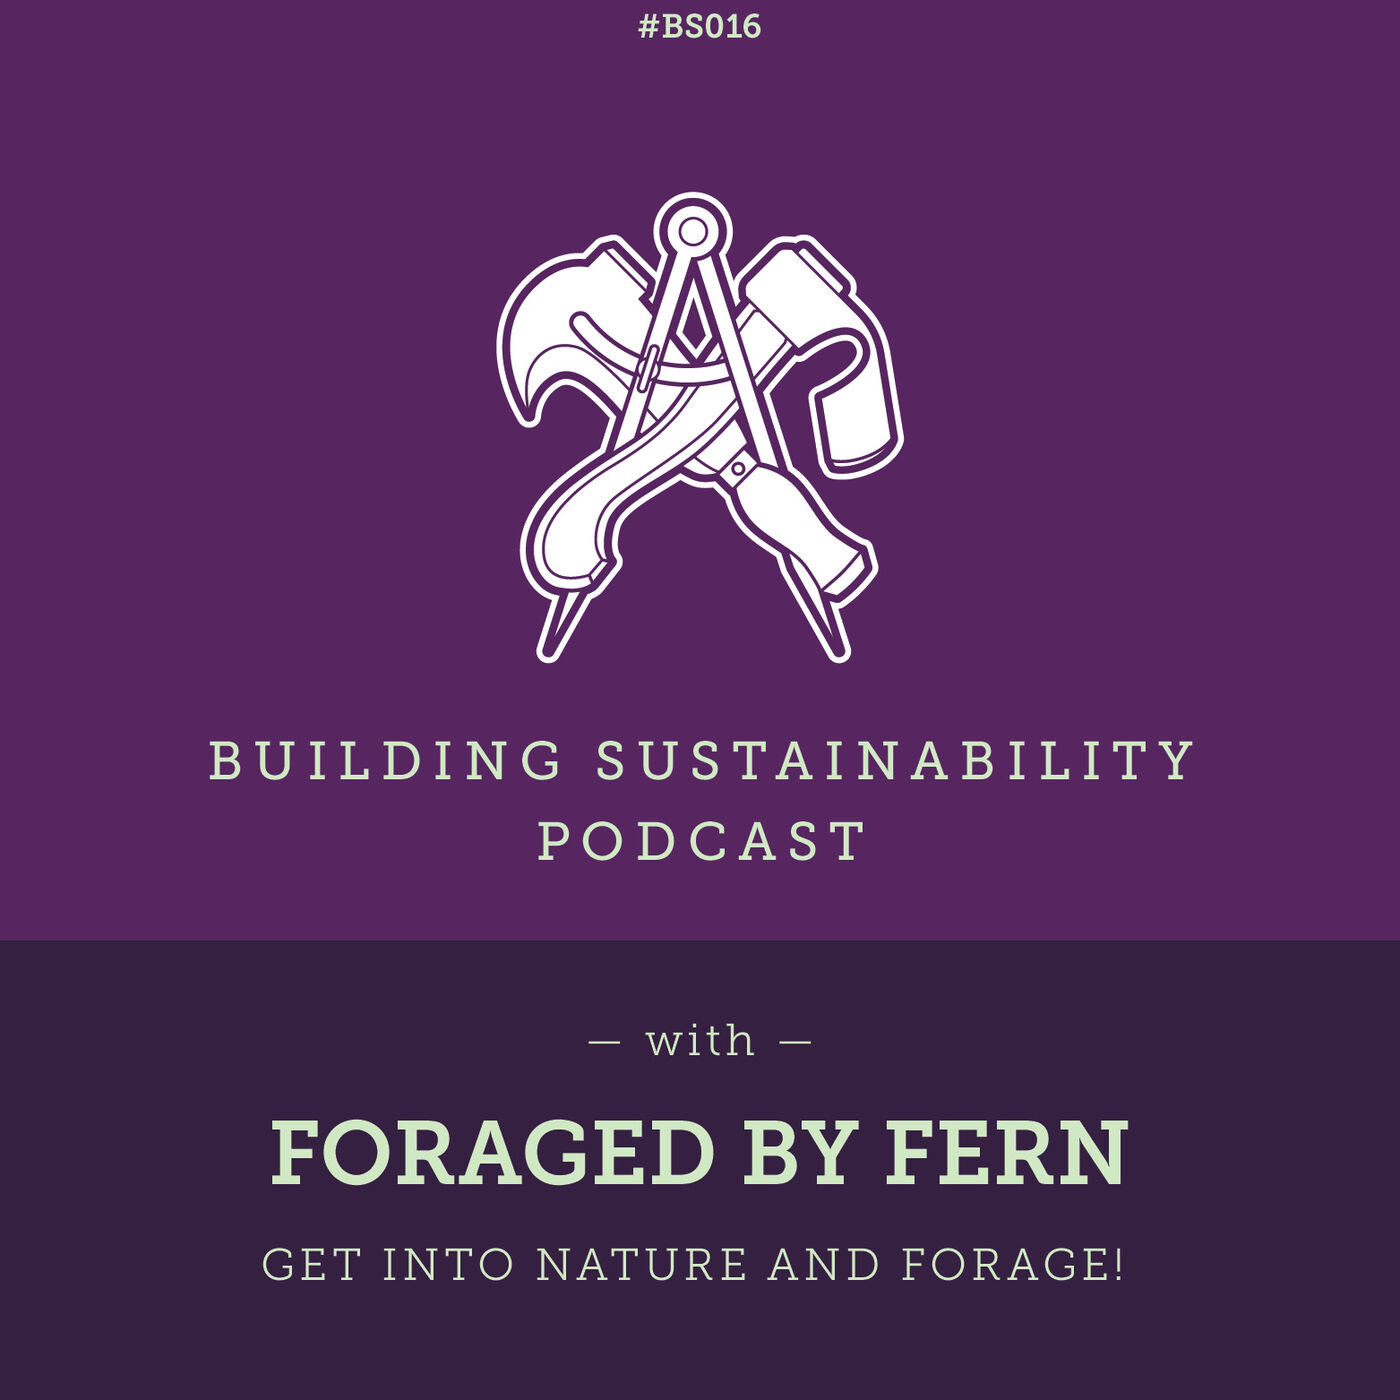 Get into nature and forage! - Foraged by Fern - BS016